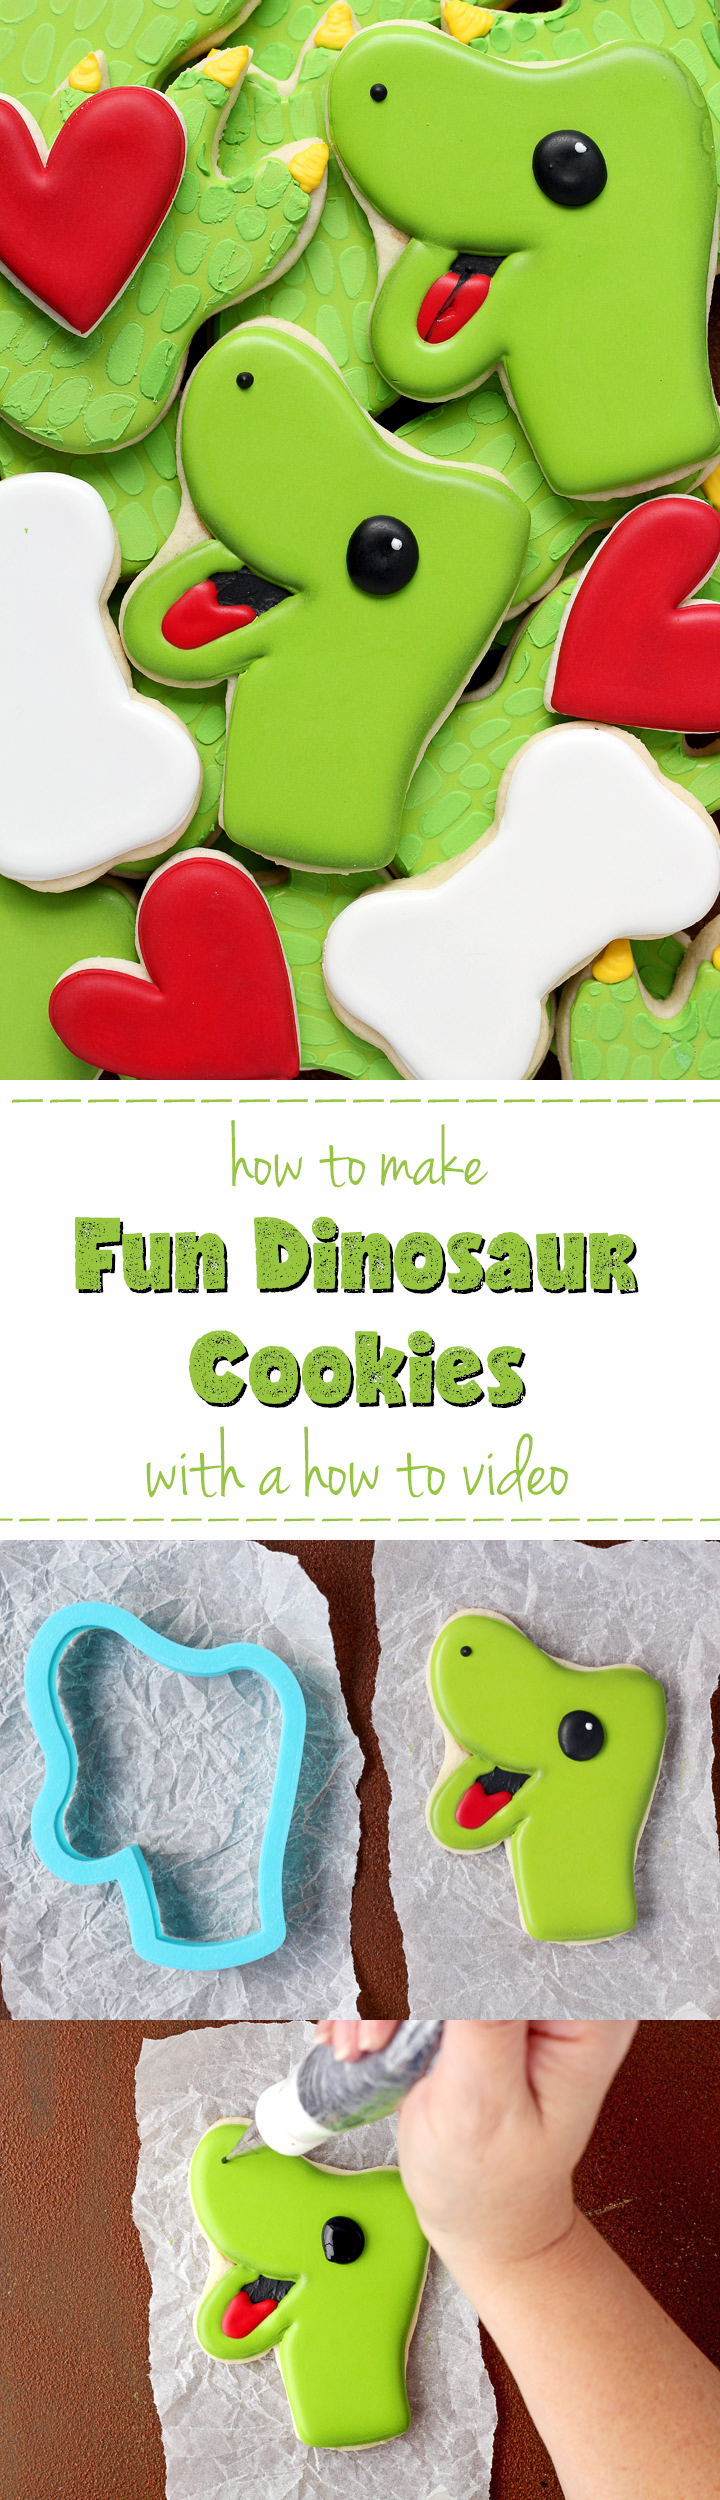 How to Make Fun Dinosaur Cookies with a Video | The Bearfoot Baker